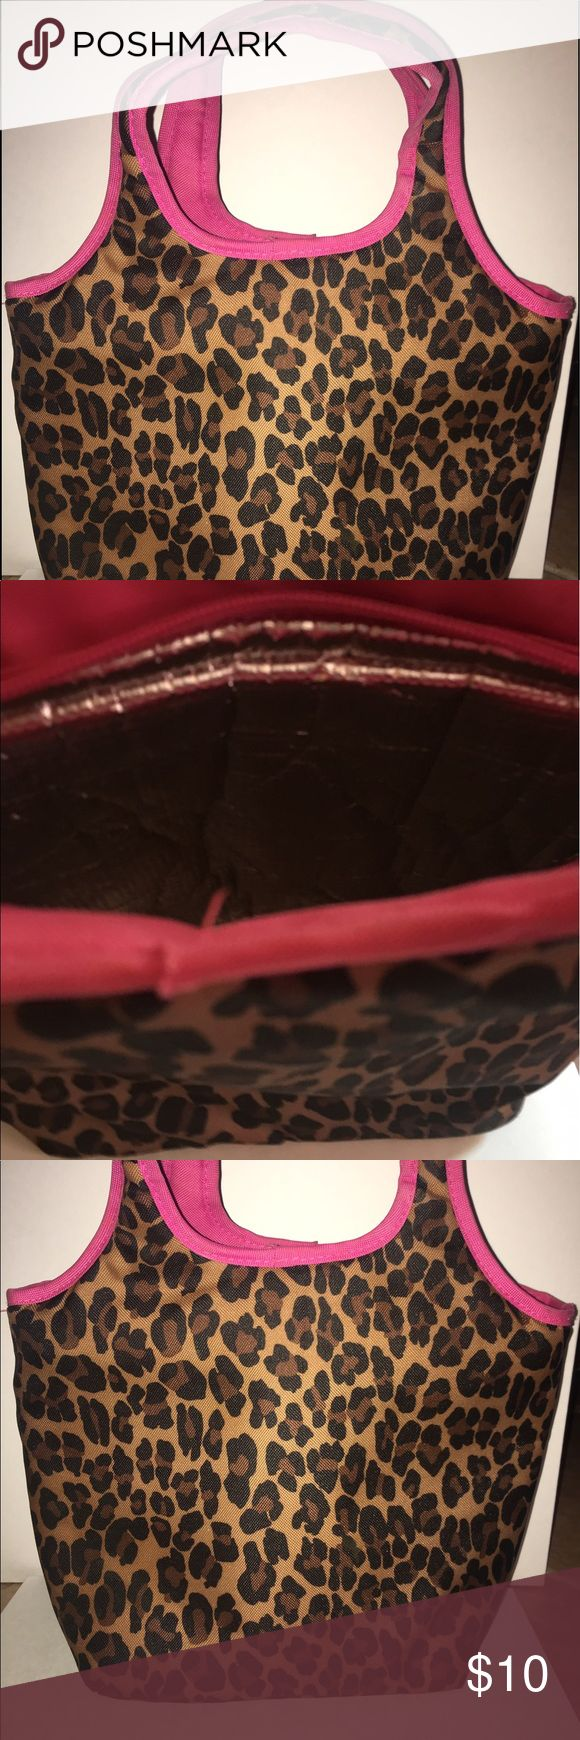 Leopard and hot pink lunch cooler/bag/tote Cooler lining. EUC Bags Travel Bags